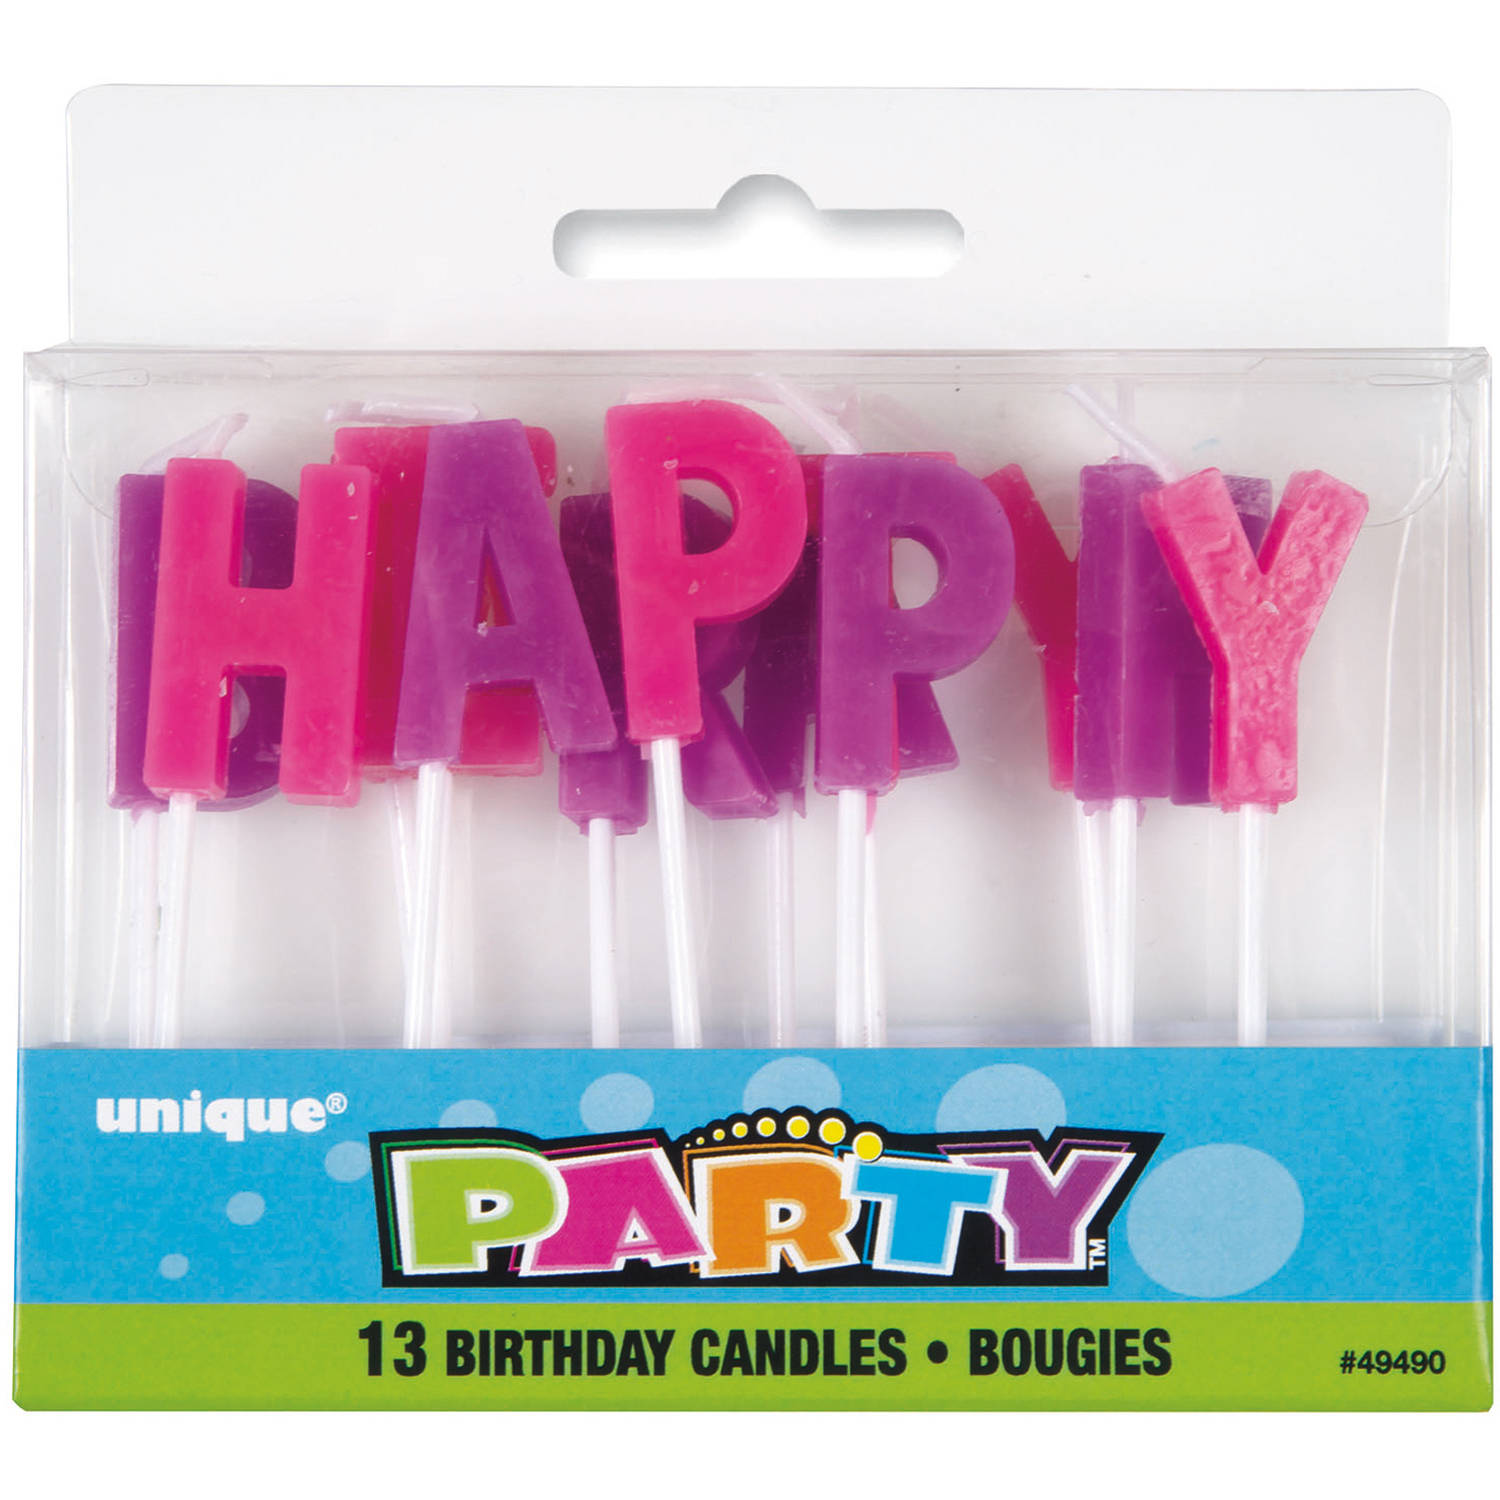 HAPPY BIRTHDAY Letter Birthday Candles Pink Purple 13pc